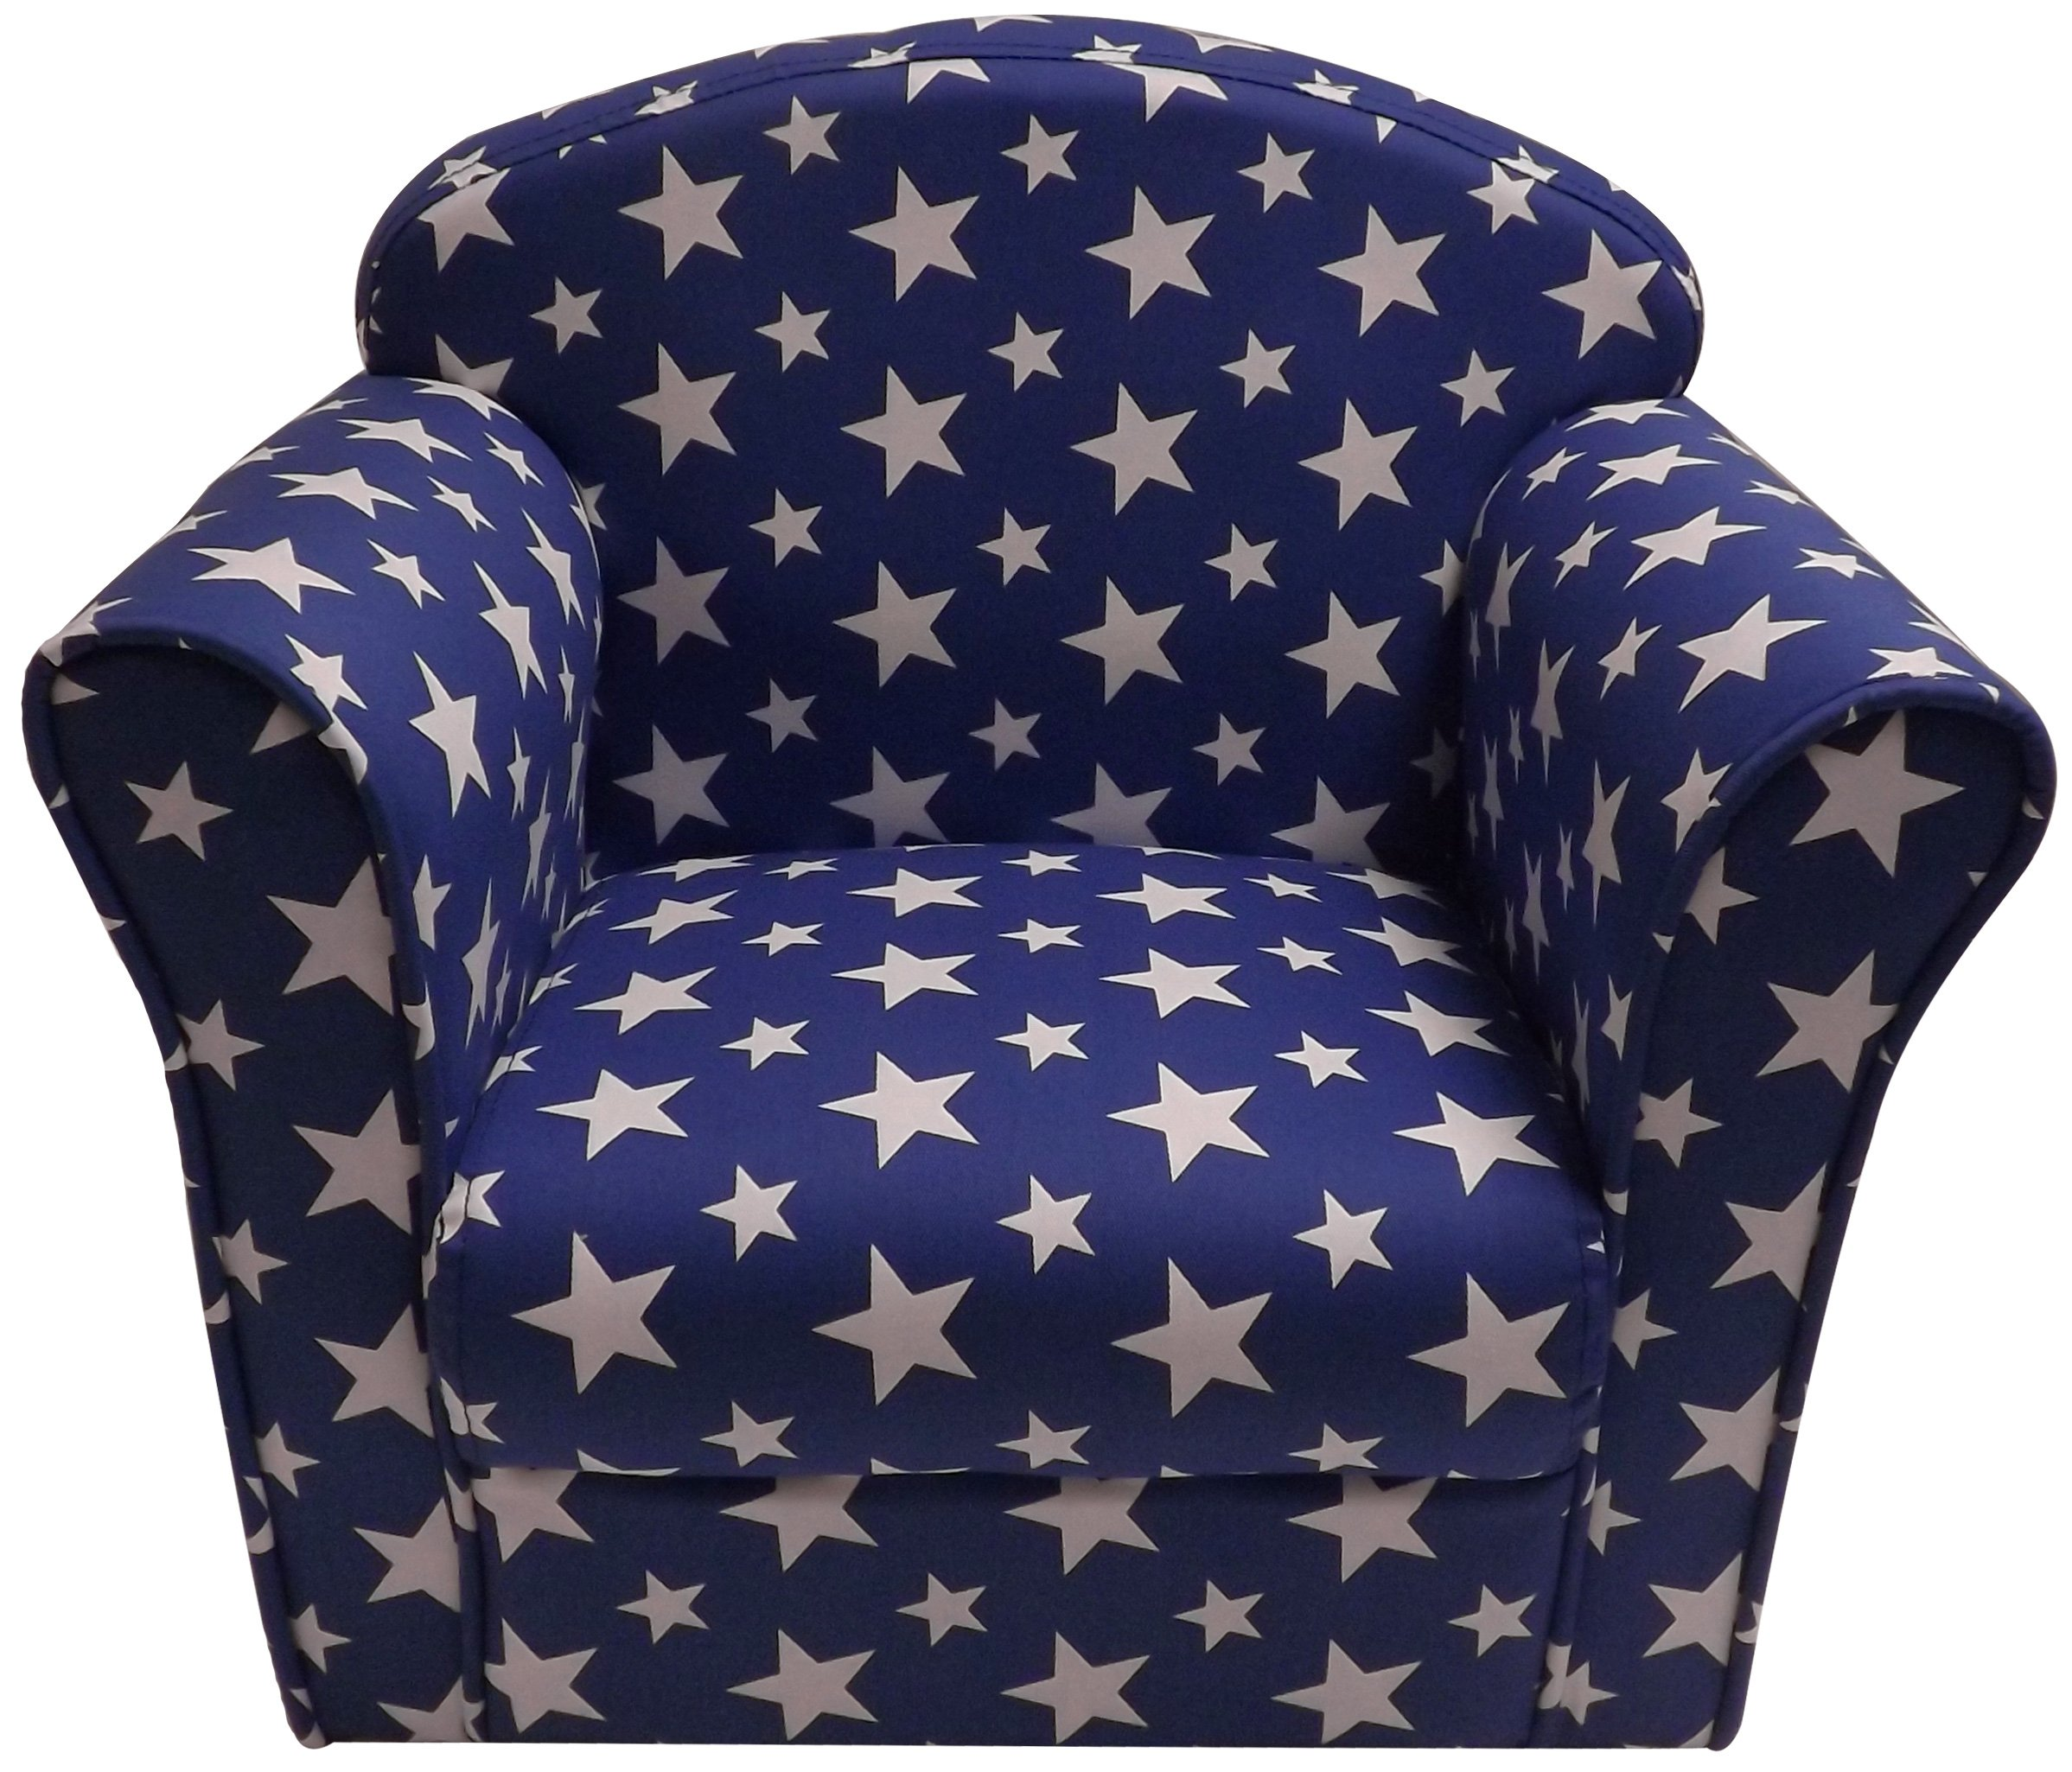 Kidsaw Mini Armchair (Blue) Kidsaw Fully safety tested Strong double stitch Piping finish 3